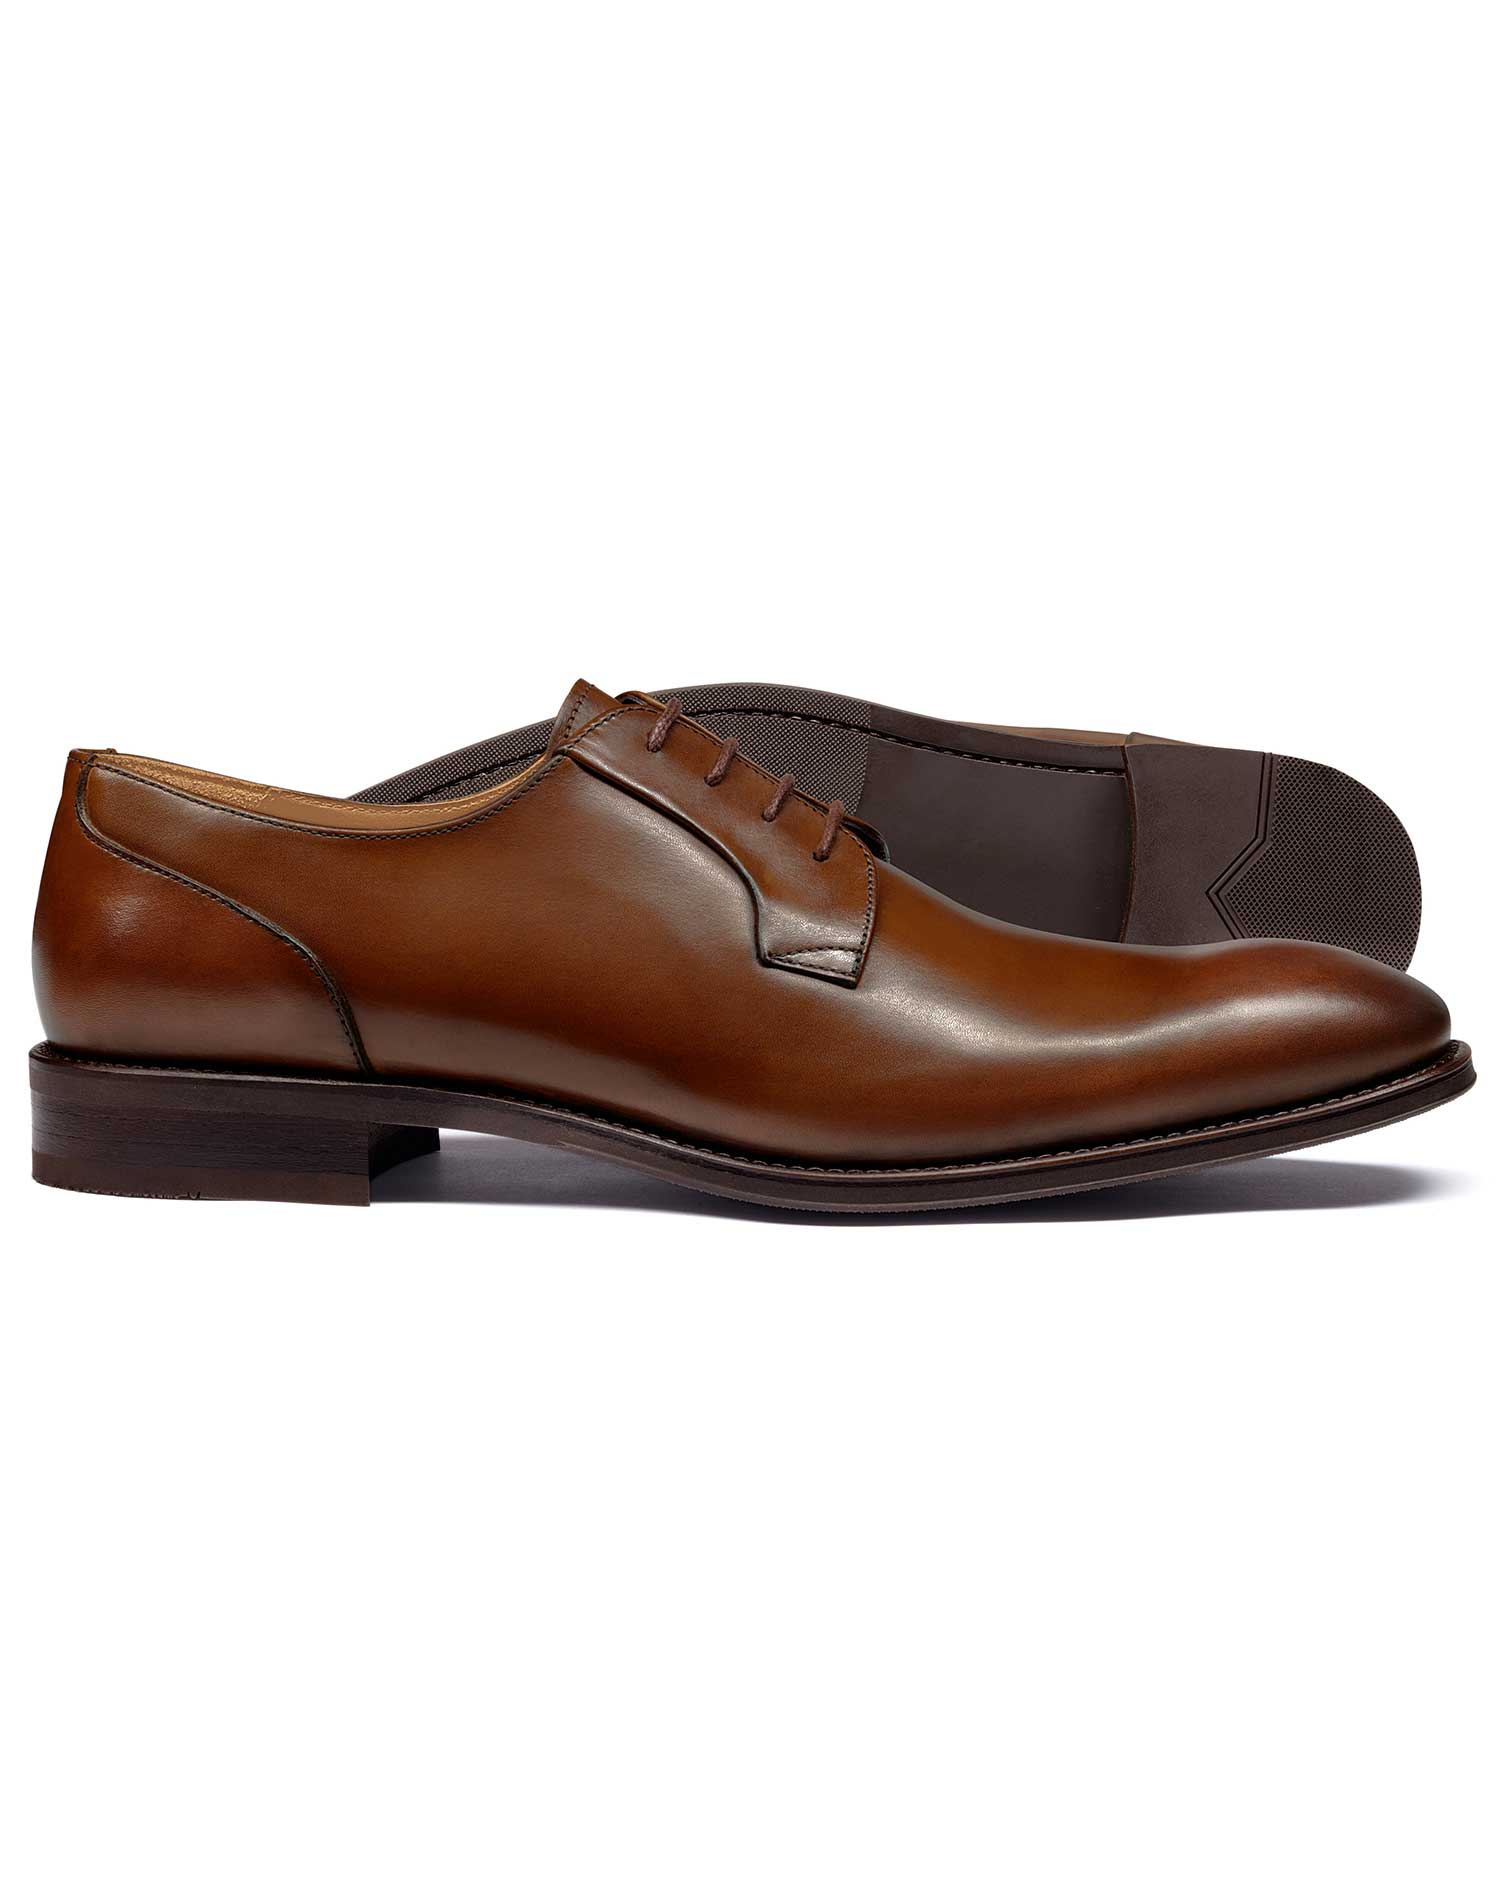 Tan Derby Shoes Size 7.5 R by Charles Tyrwhitt